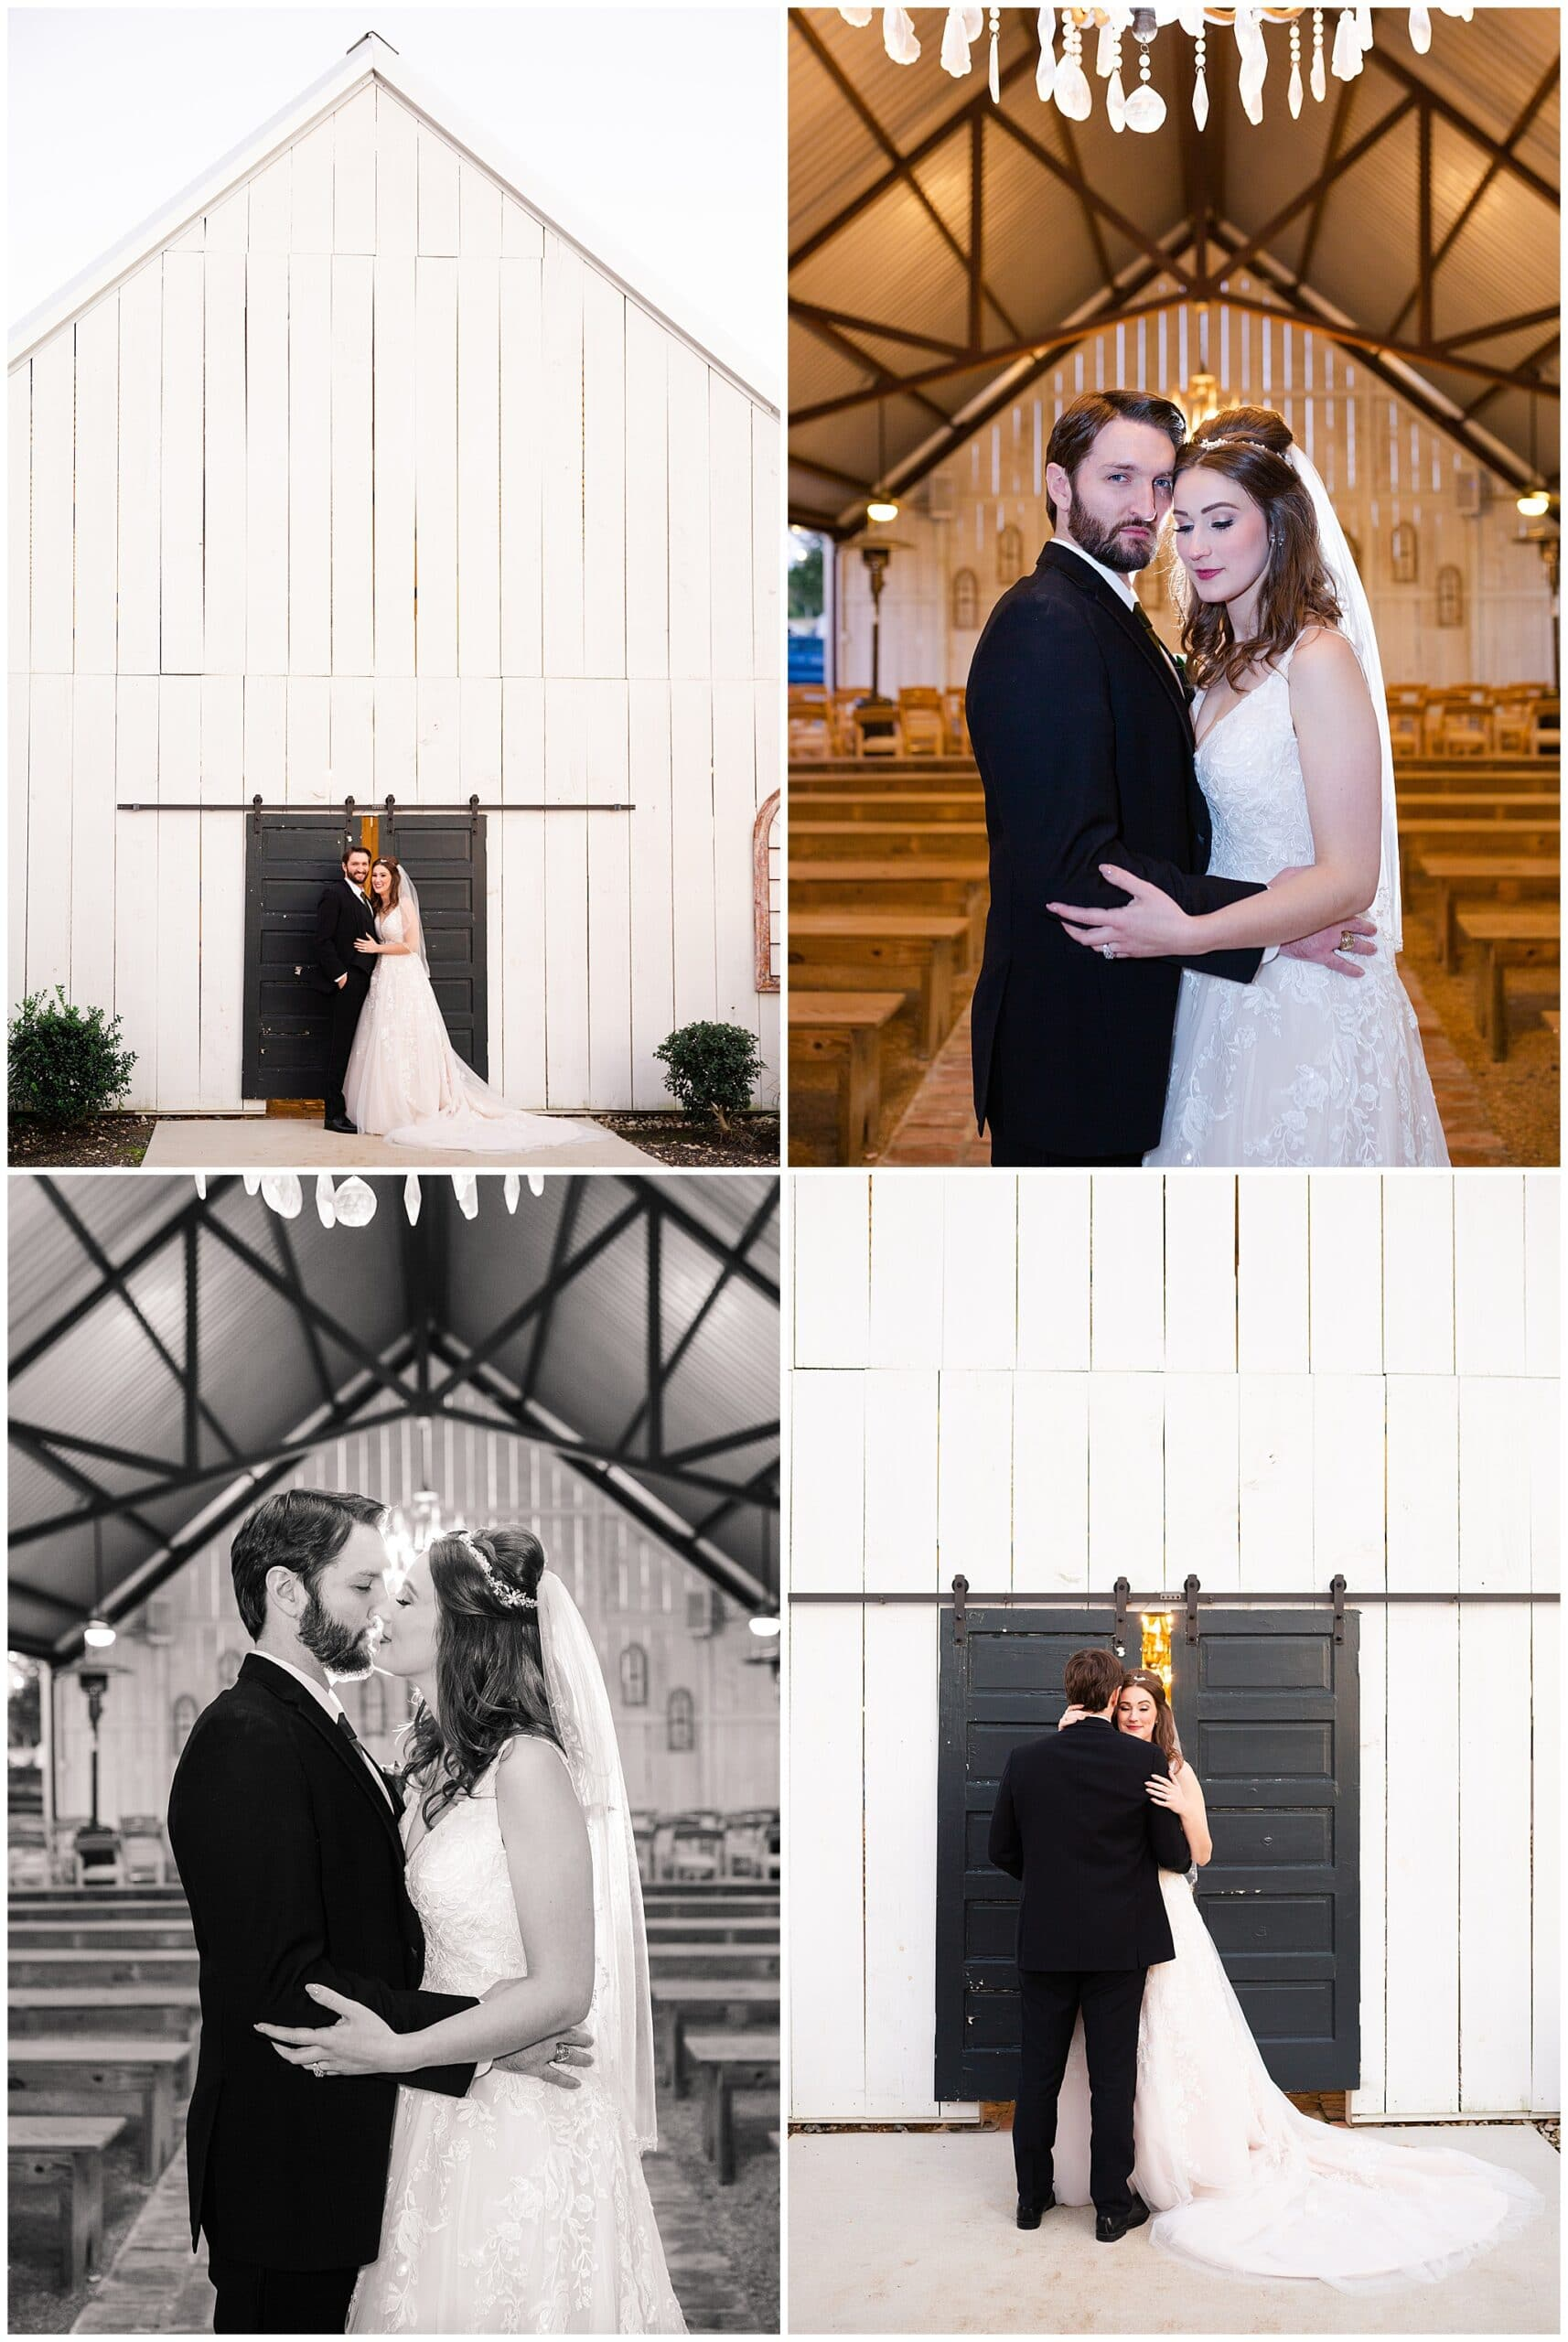 bride and groom portraits at Hochzeit Hall captured by Swish and Click Photography